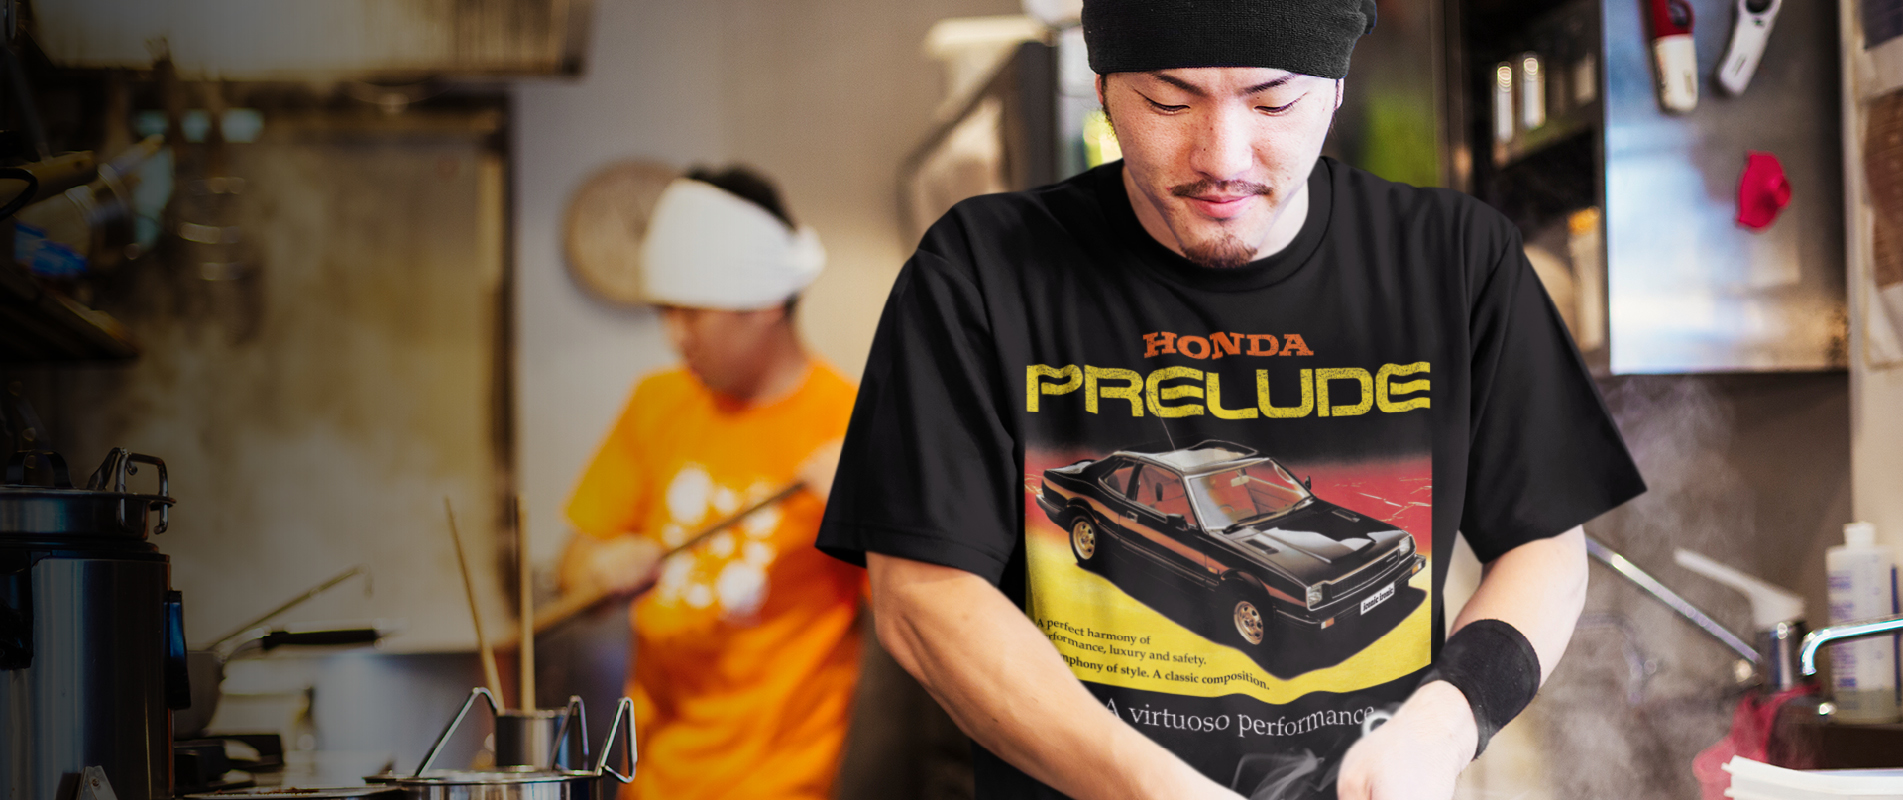 Japanese chef cooking wearing a Honda Prelude t shirt